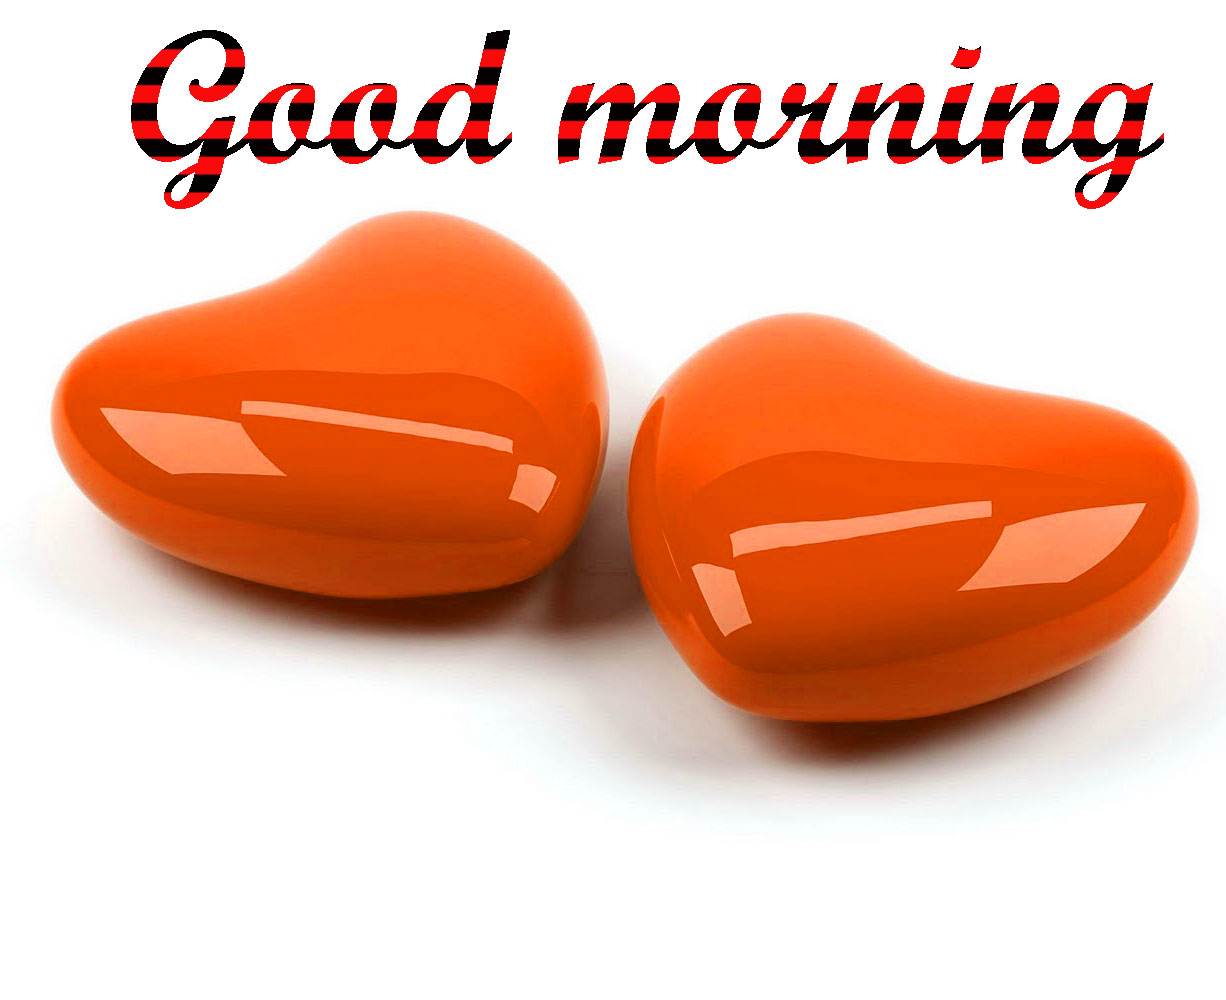 BEAUTIFUL 3D GOOD MORNING IMAGES PICS FOR LOVER